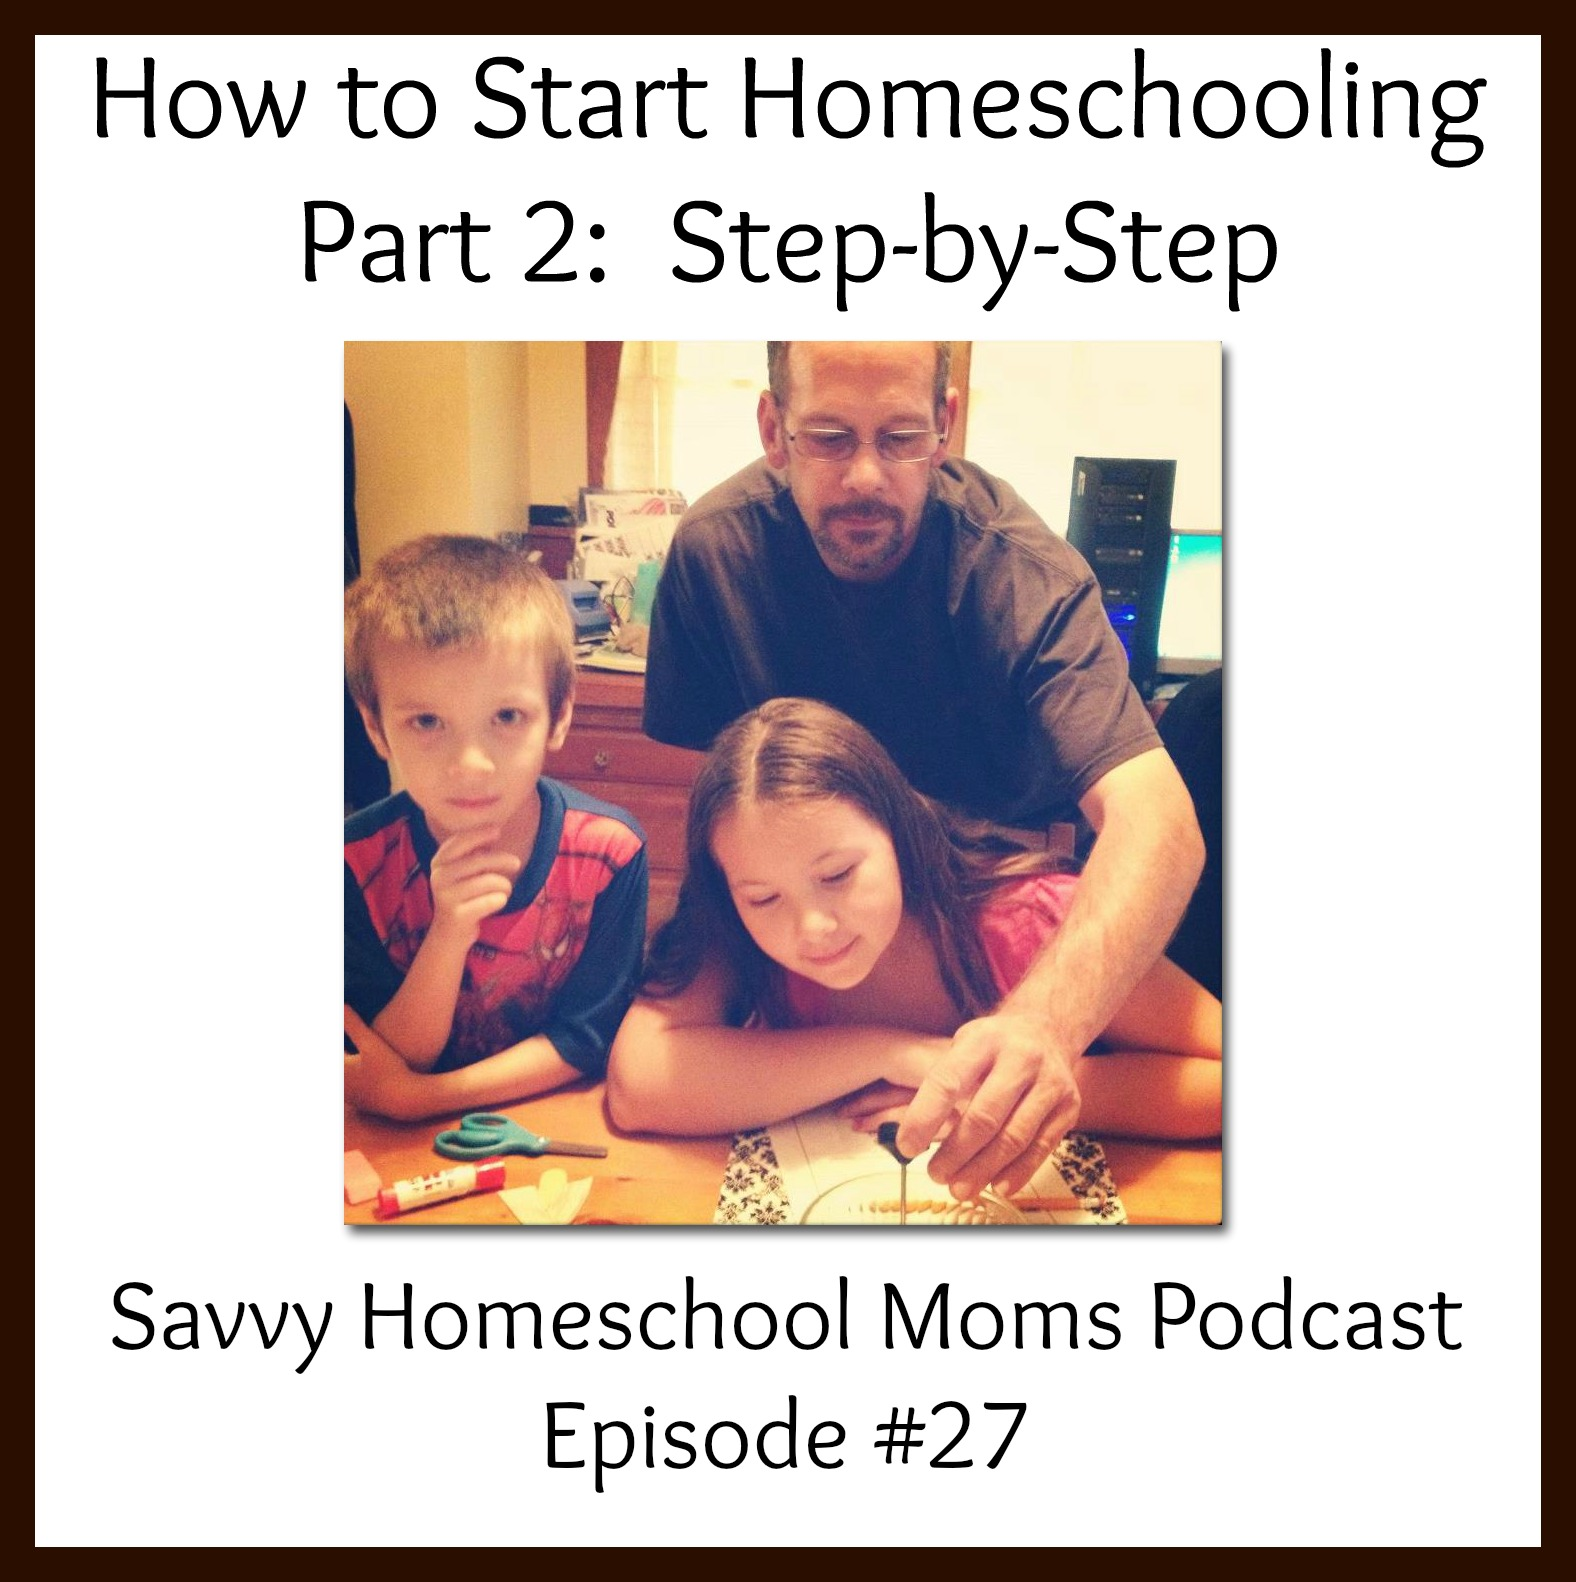 How to Start Homeschooling, Part 2: Step-by-Step, Savvy Homeschool Moms Podcast